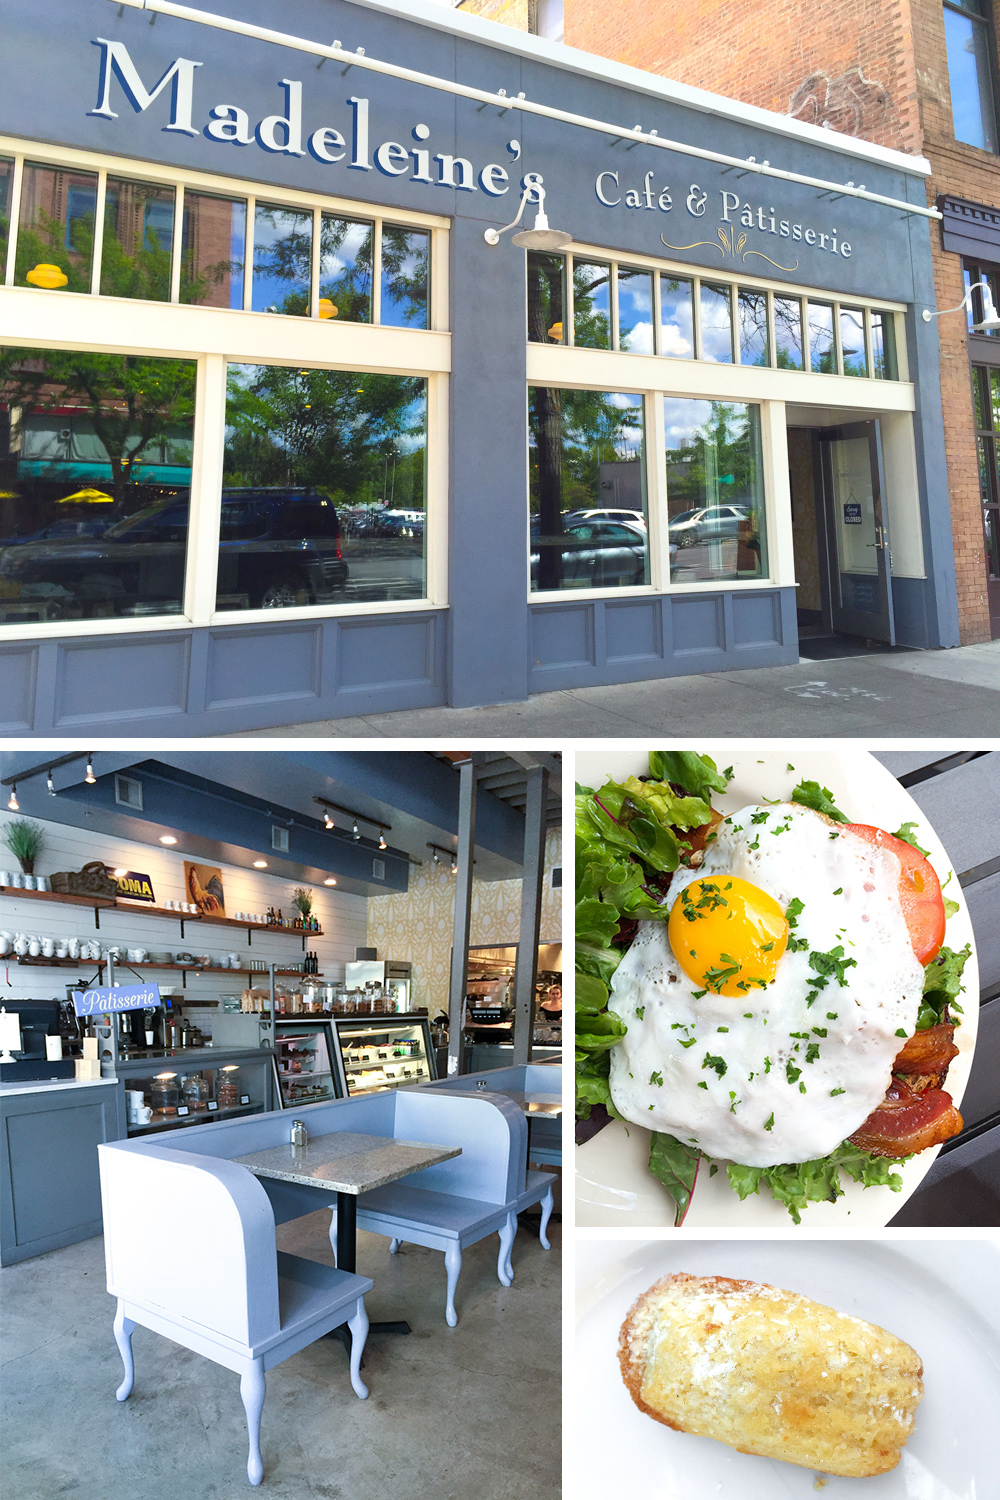 Madeleine's in Spokane, WA. Pretty and inviting interiors, an open faced BLT breakfast sandwich with a friend egg and their signature, a their moniker; a lemony Madeleine.